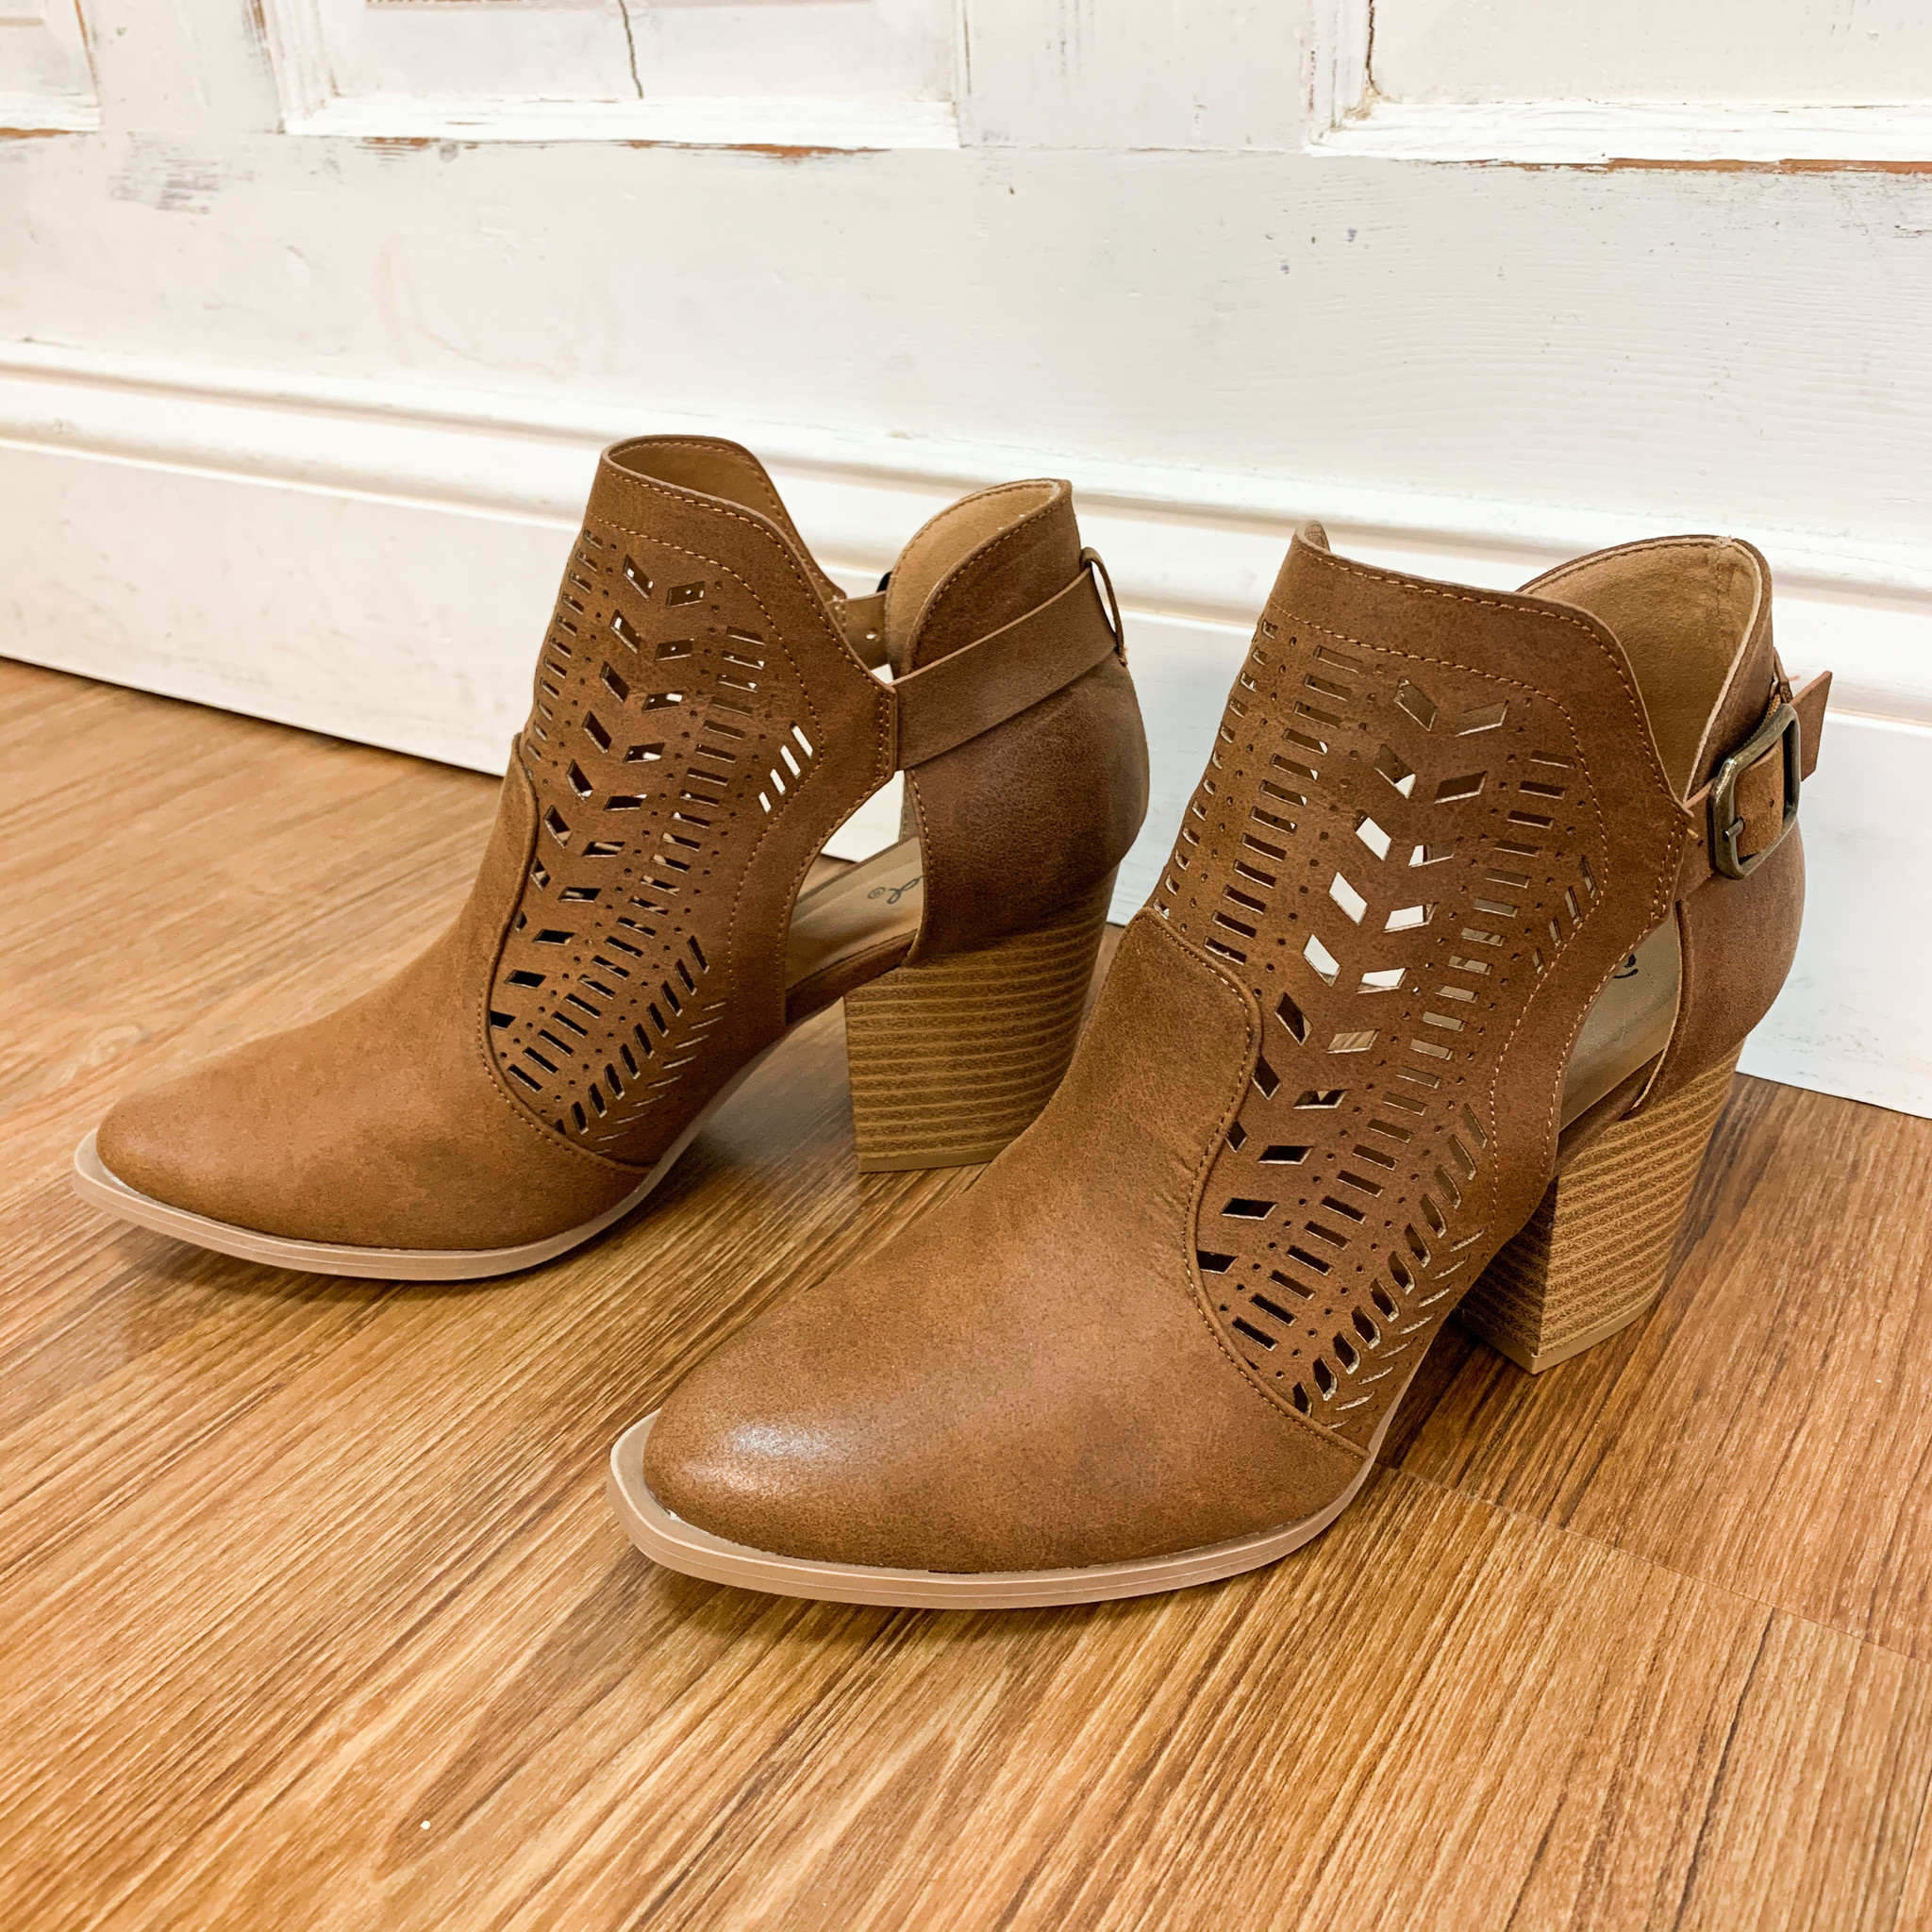 Qupid Maple Buckle Cut-Out Booties